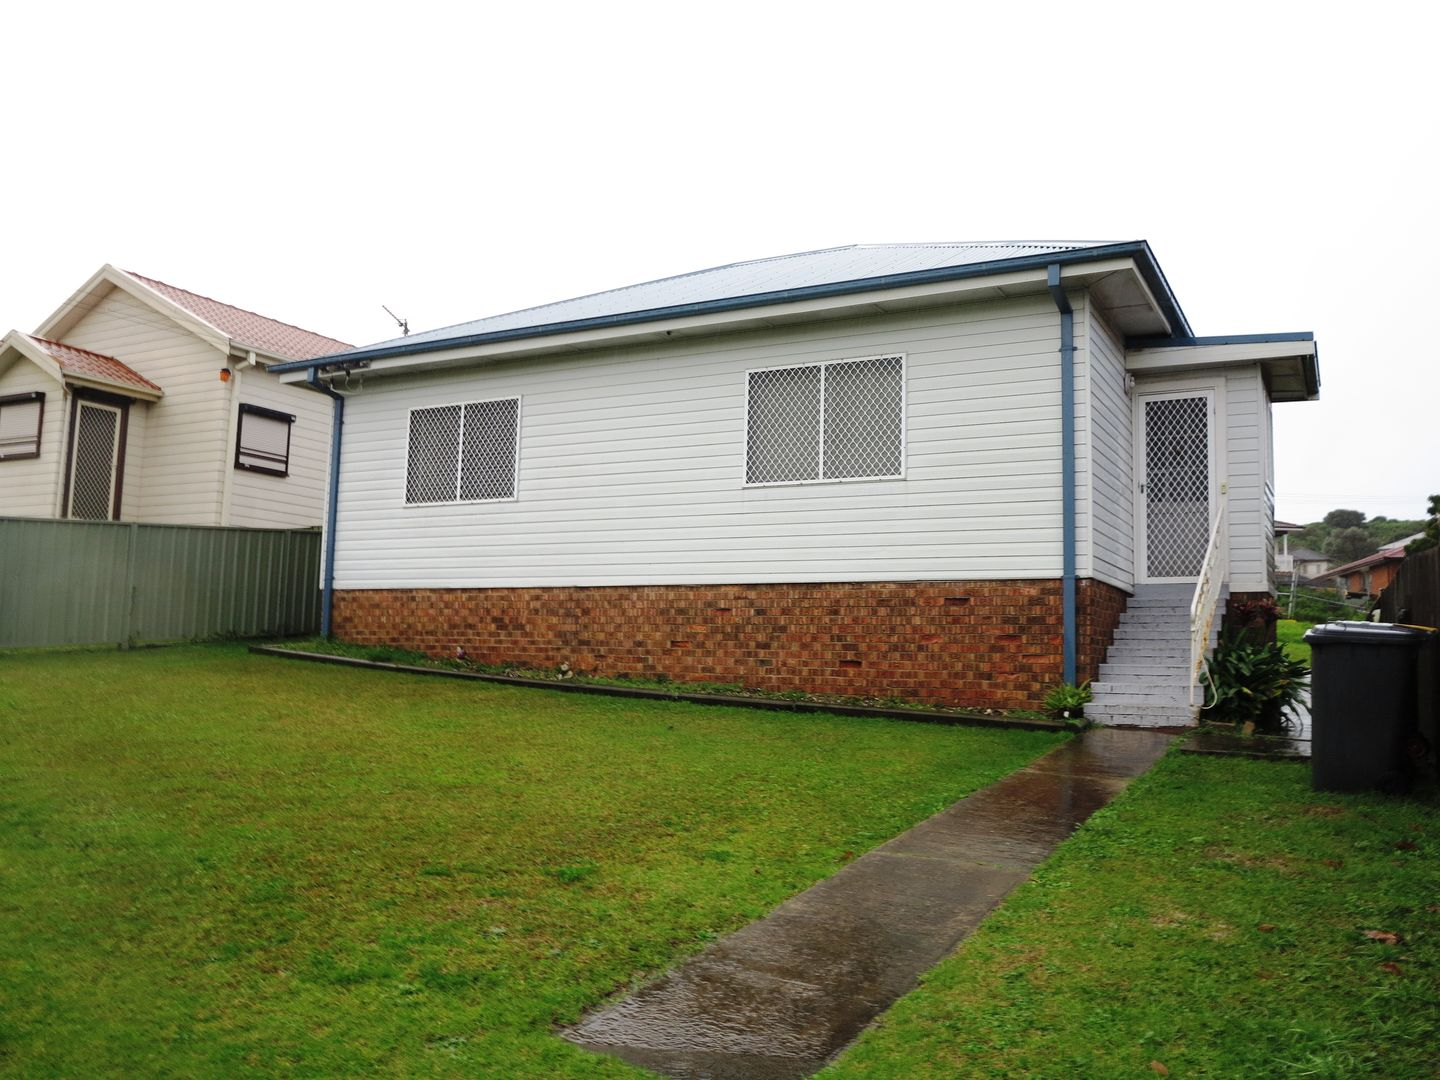 93 Shellharbour Rd, Port Kembla NSW 2505, Image 0